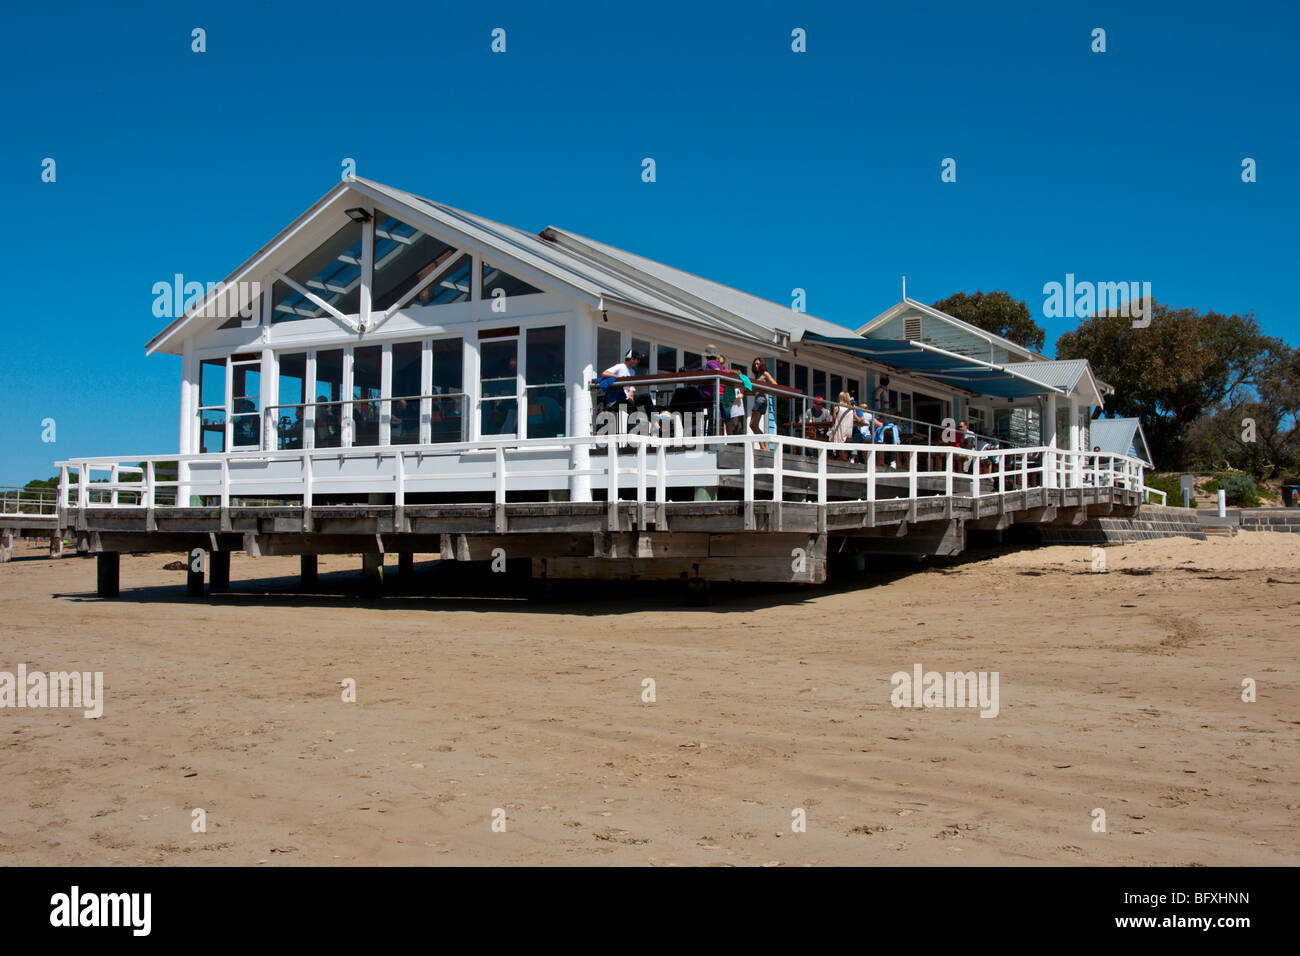 Cafe on beach at Barwon Heads Victoria Australia - Stock Image